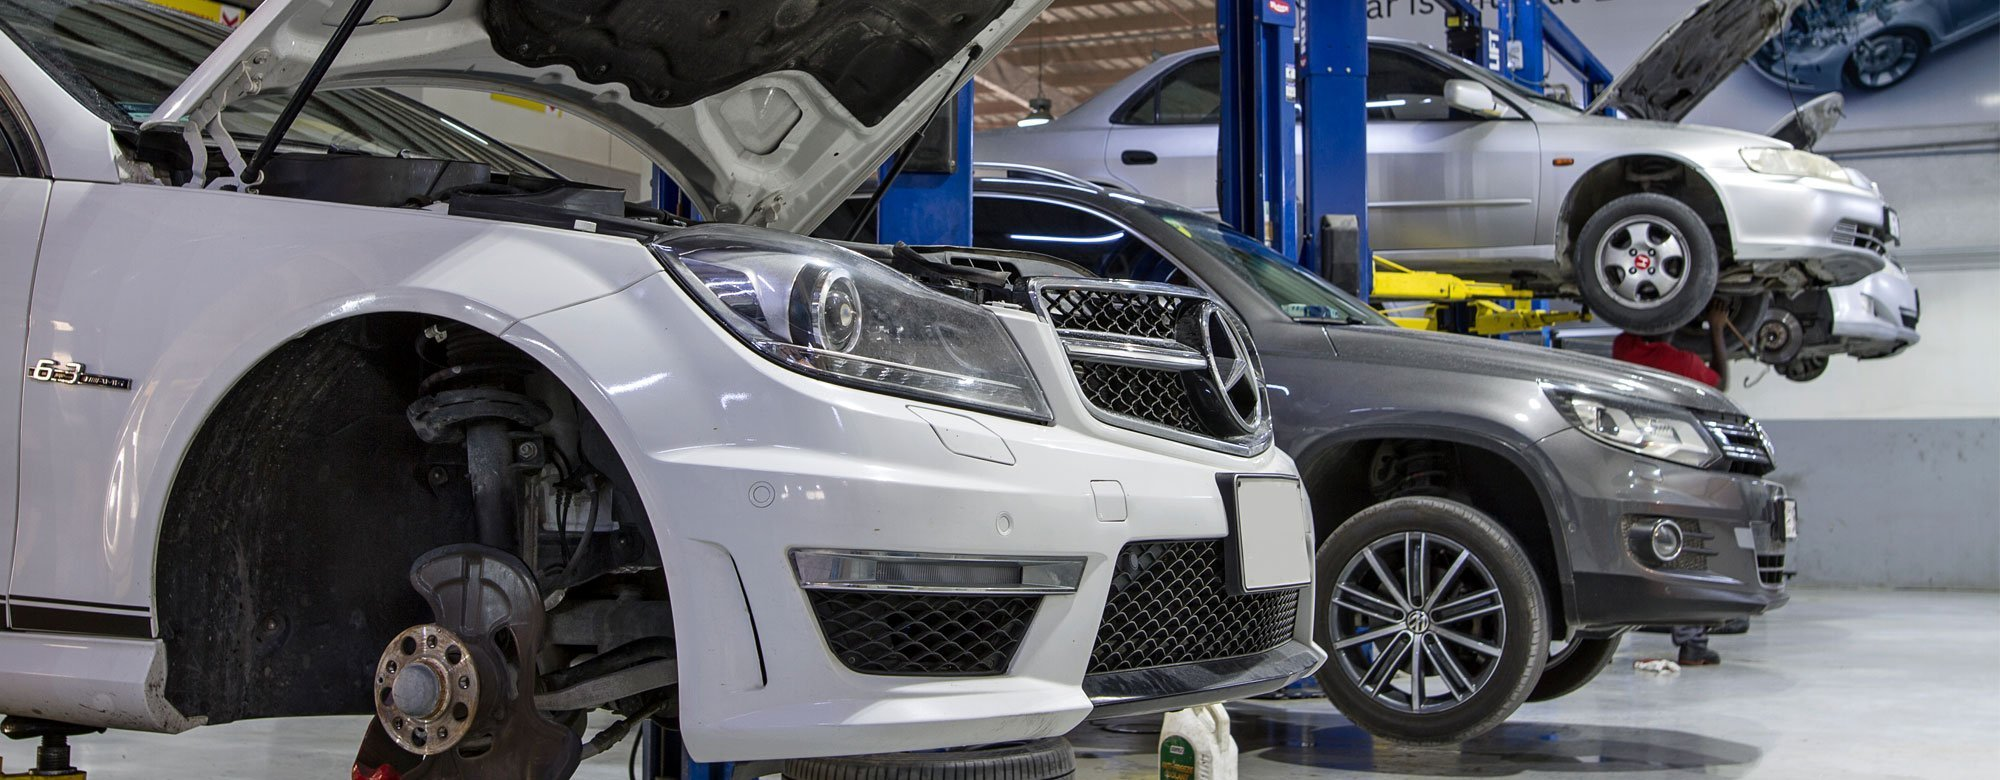 Car Mechanical Repair Services Dubai Car Maintenance